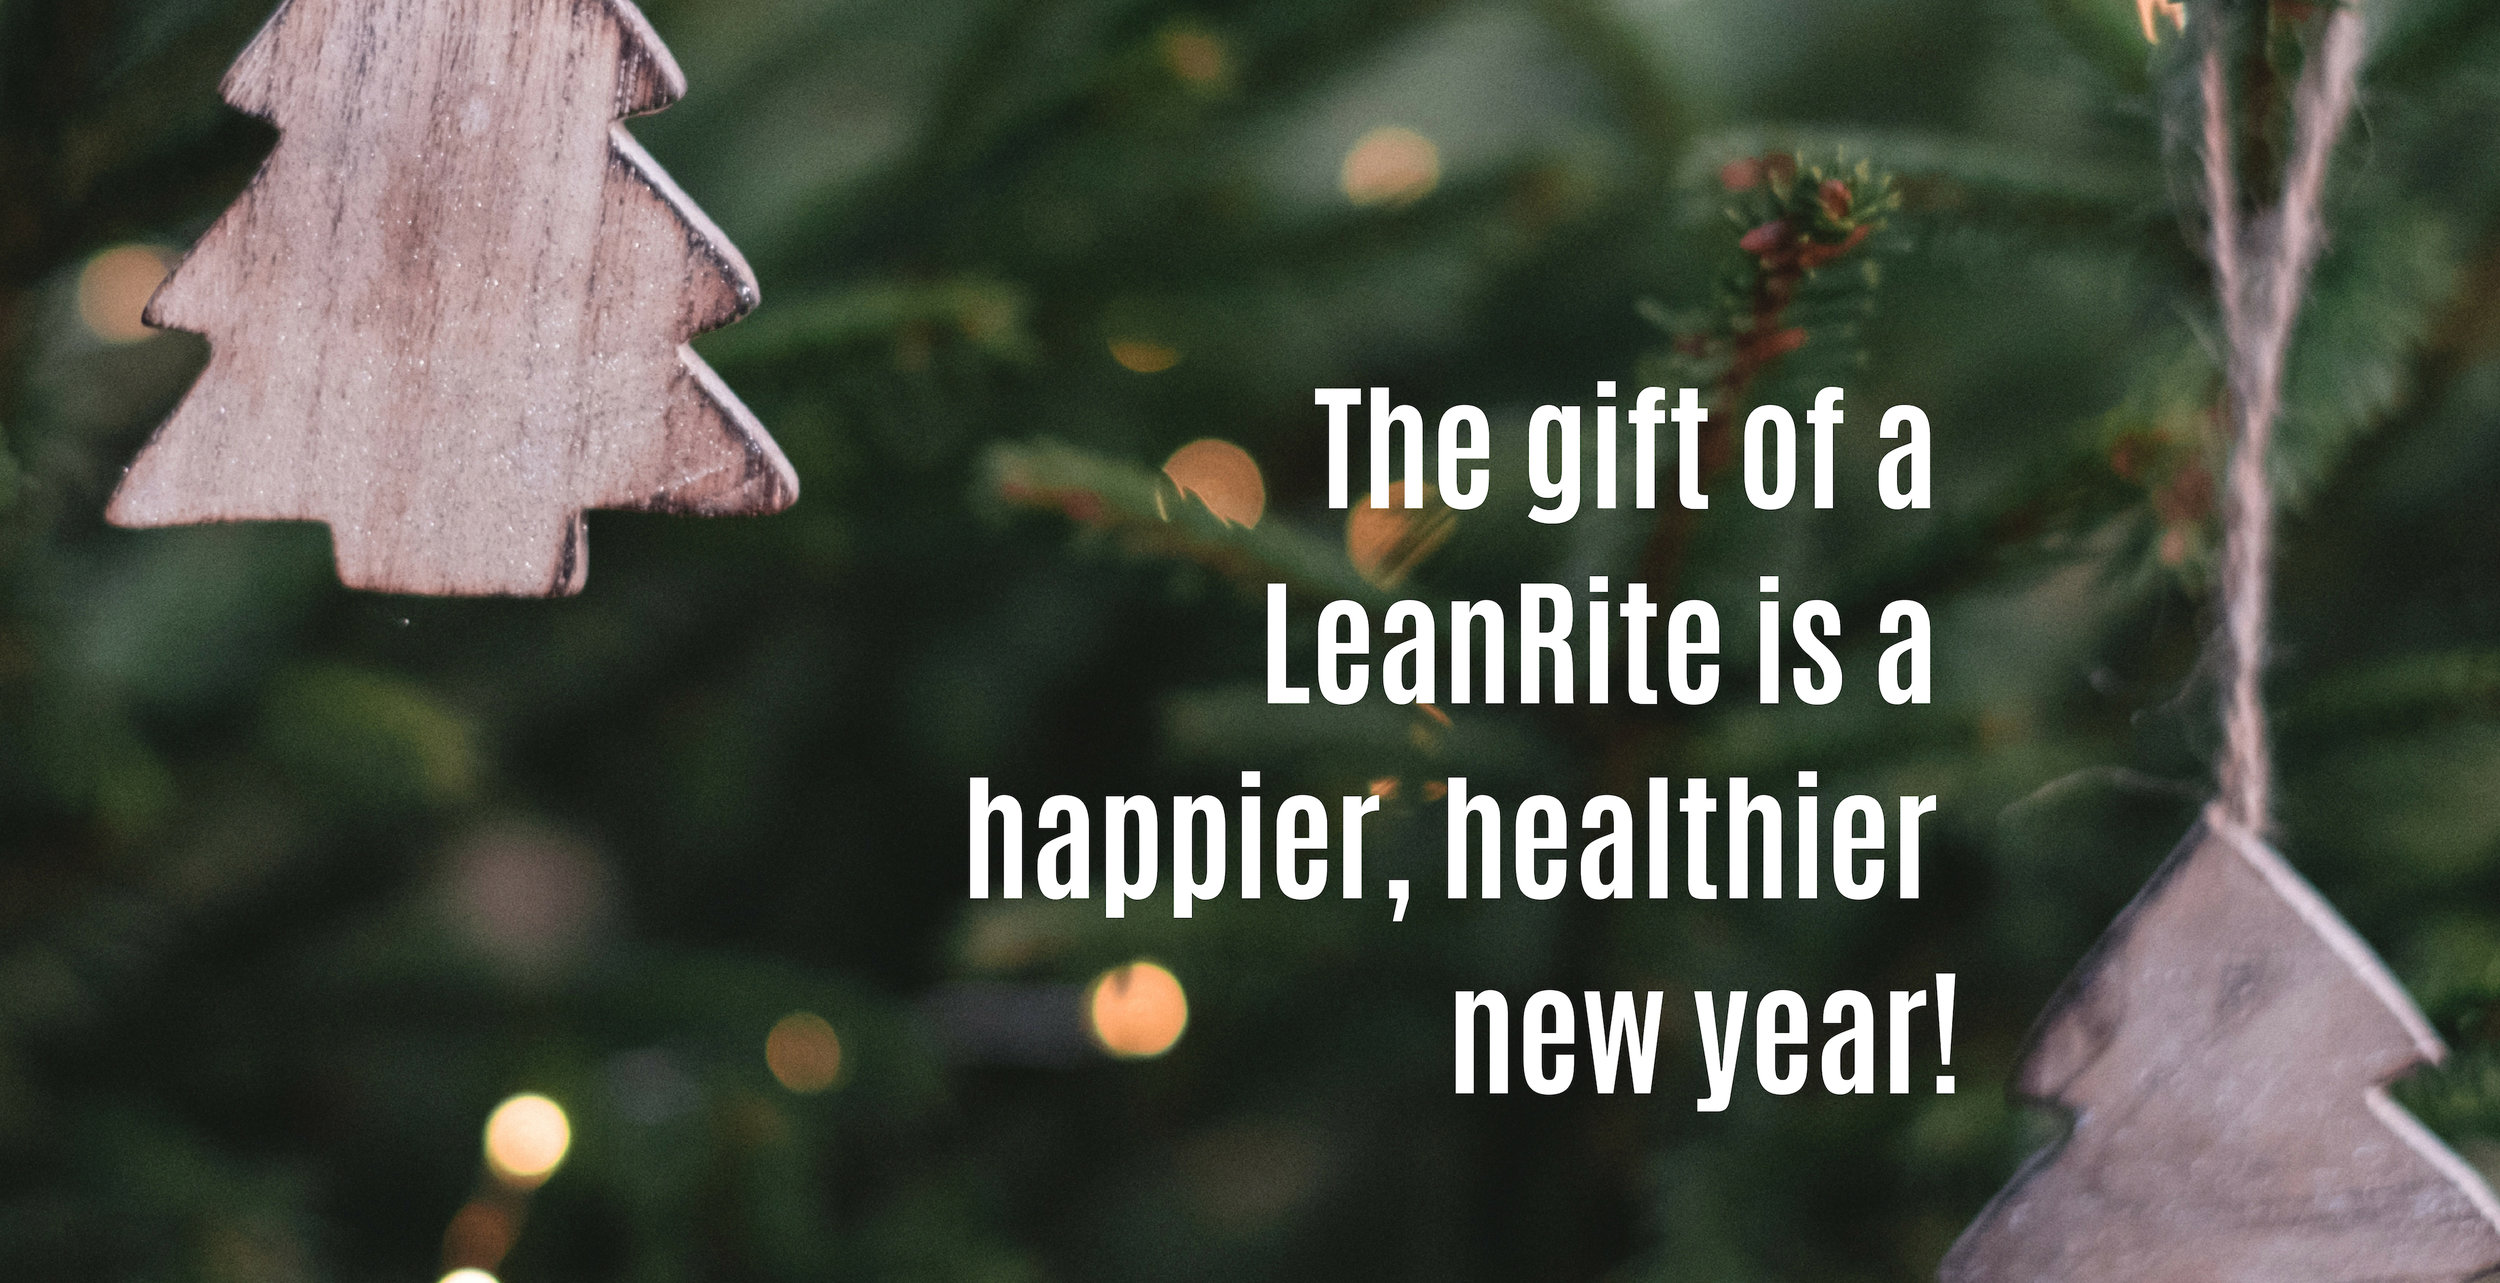 LeanRite Makes the Cut on Numerous 2018 Holiday Gift Guides!  (5).jpg